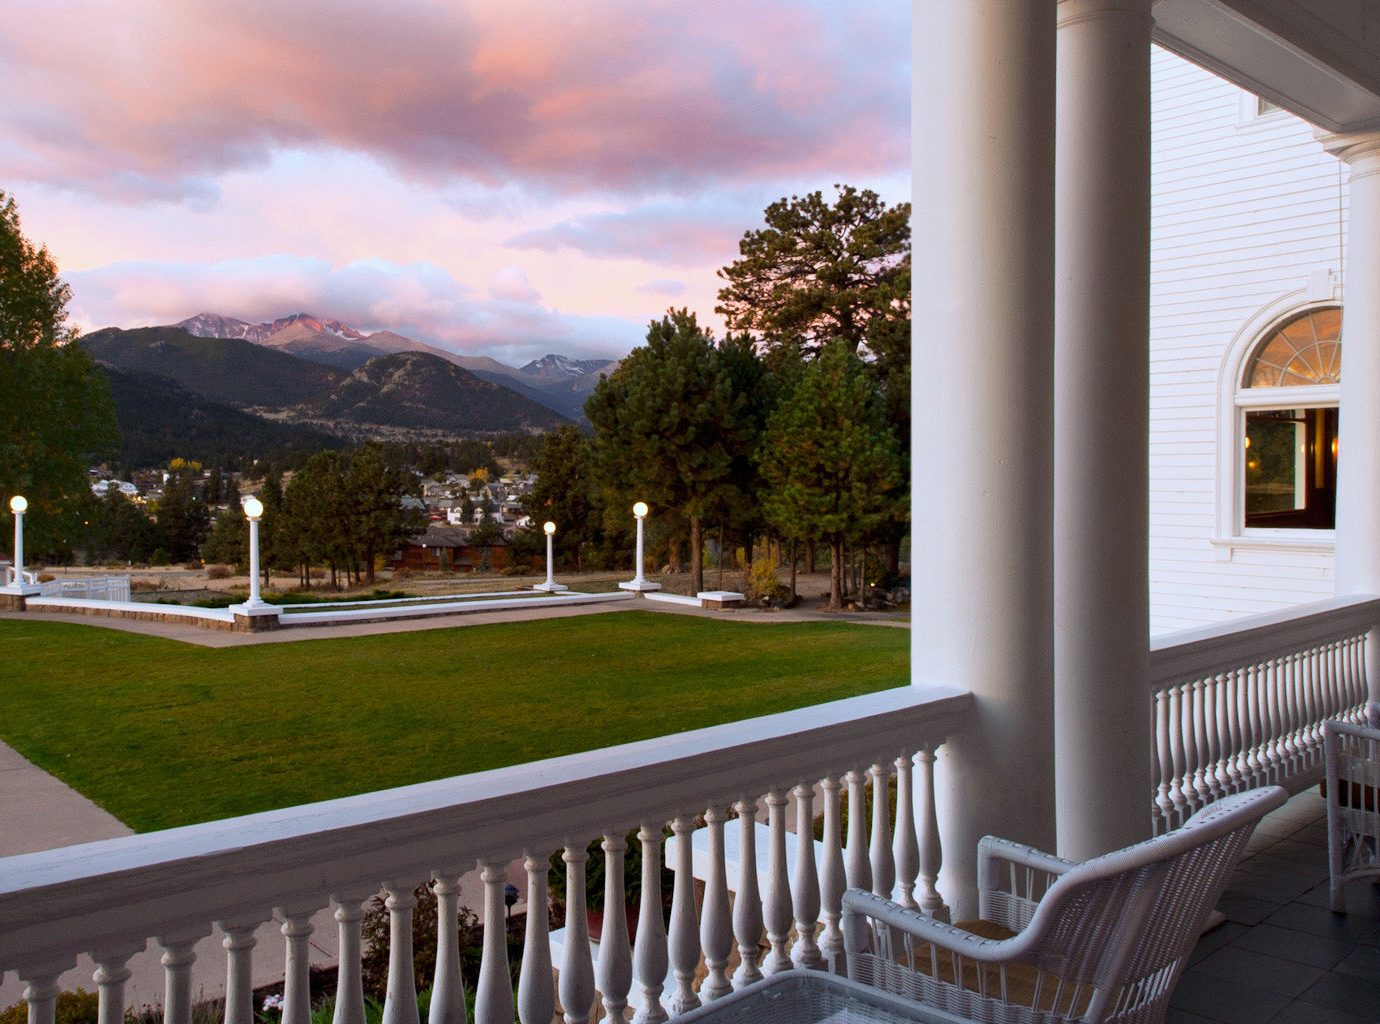 Balcony Historic Hotels Mountains Patio Resort Scenic views outdoor building property house estate home Architecture vacation residential area porch real estate Villa interior design backyard mansion overlooking Deck area colonnade